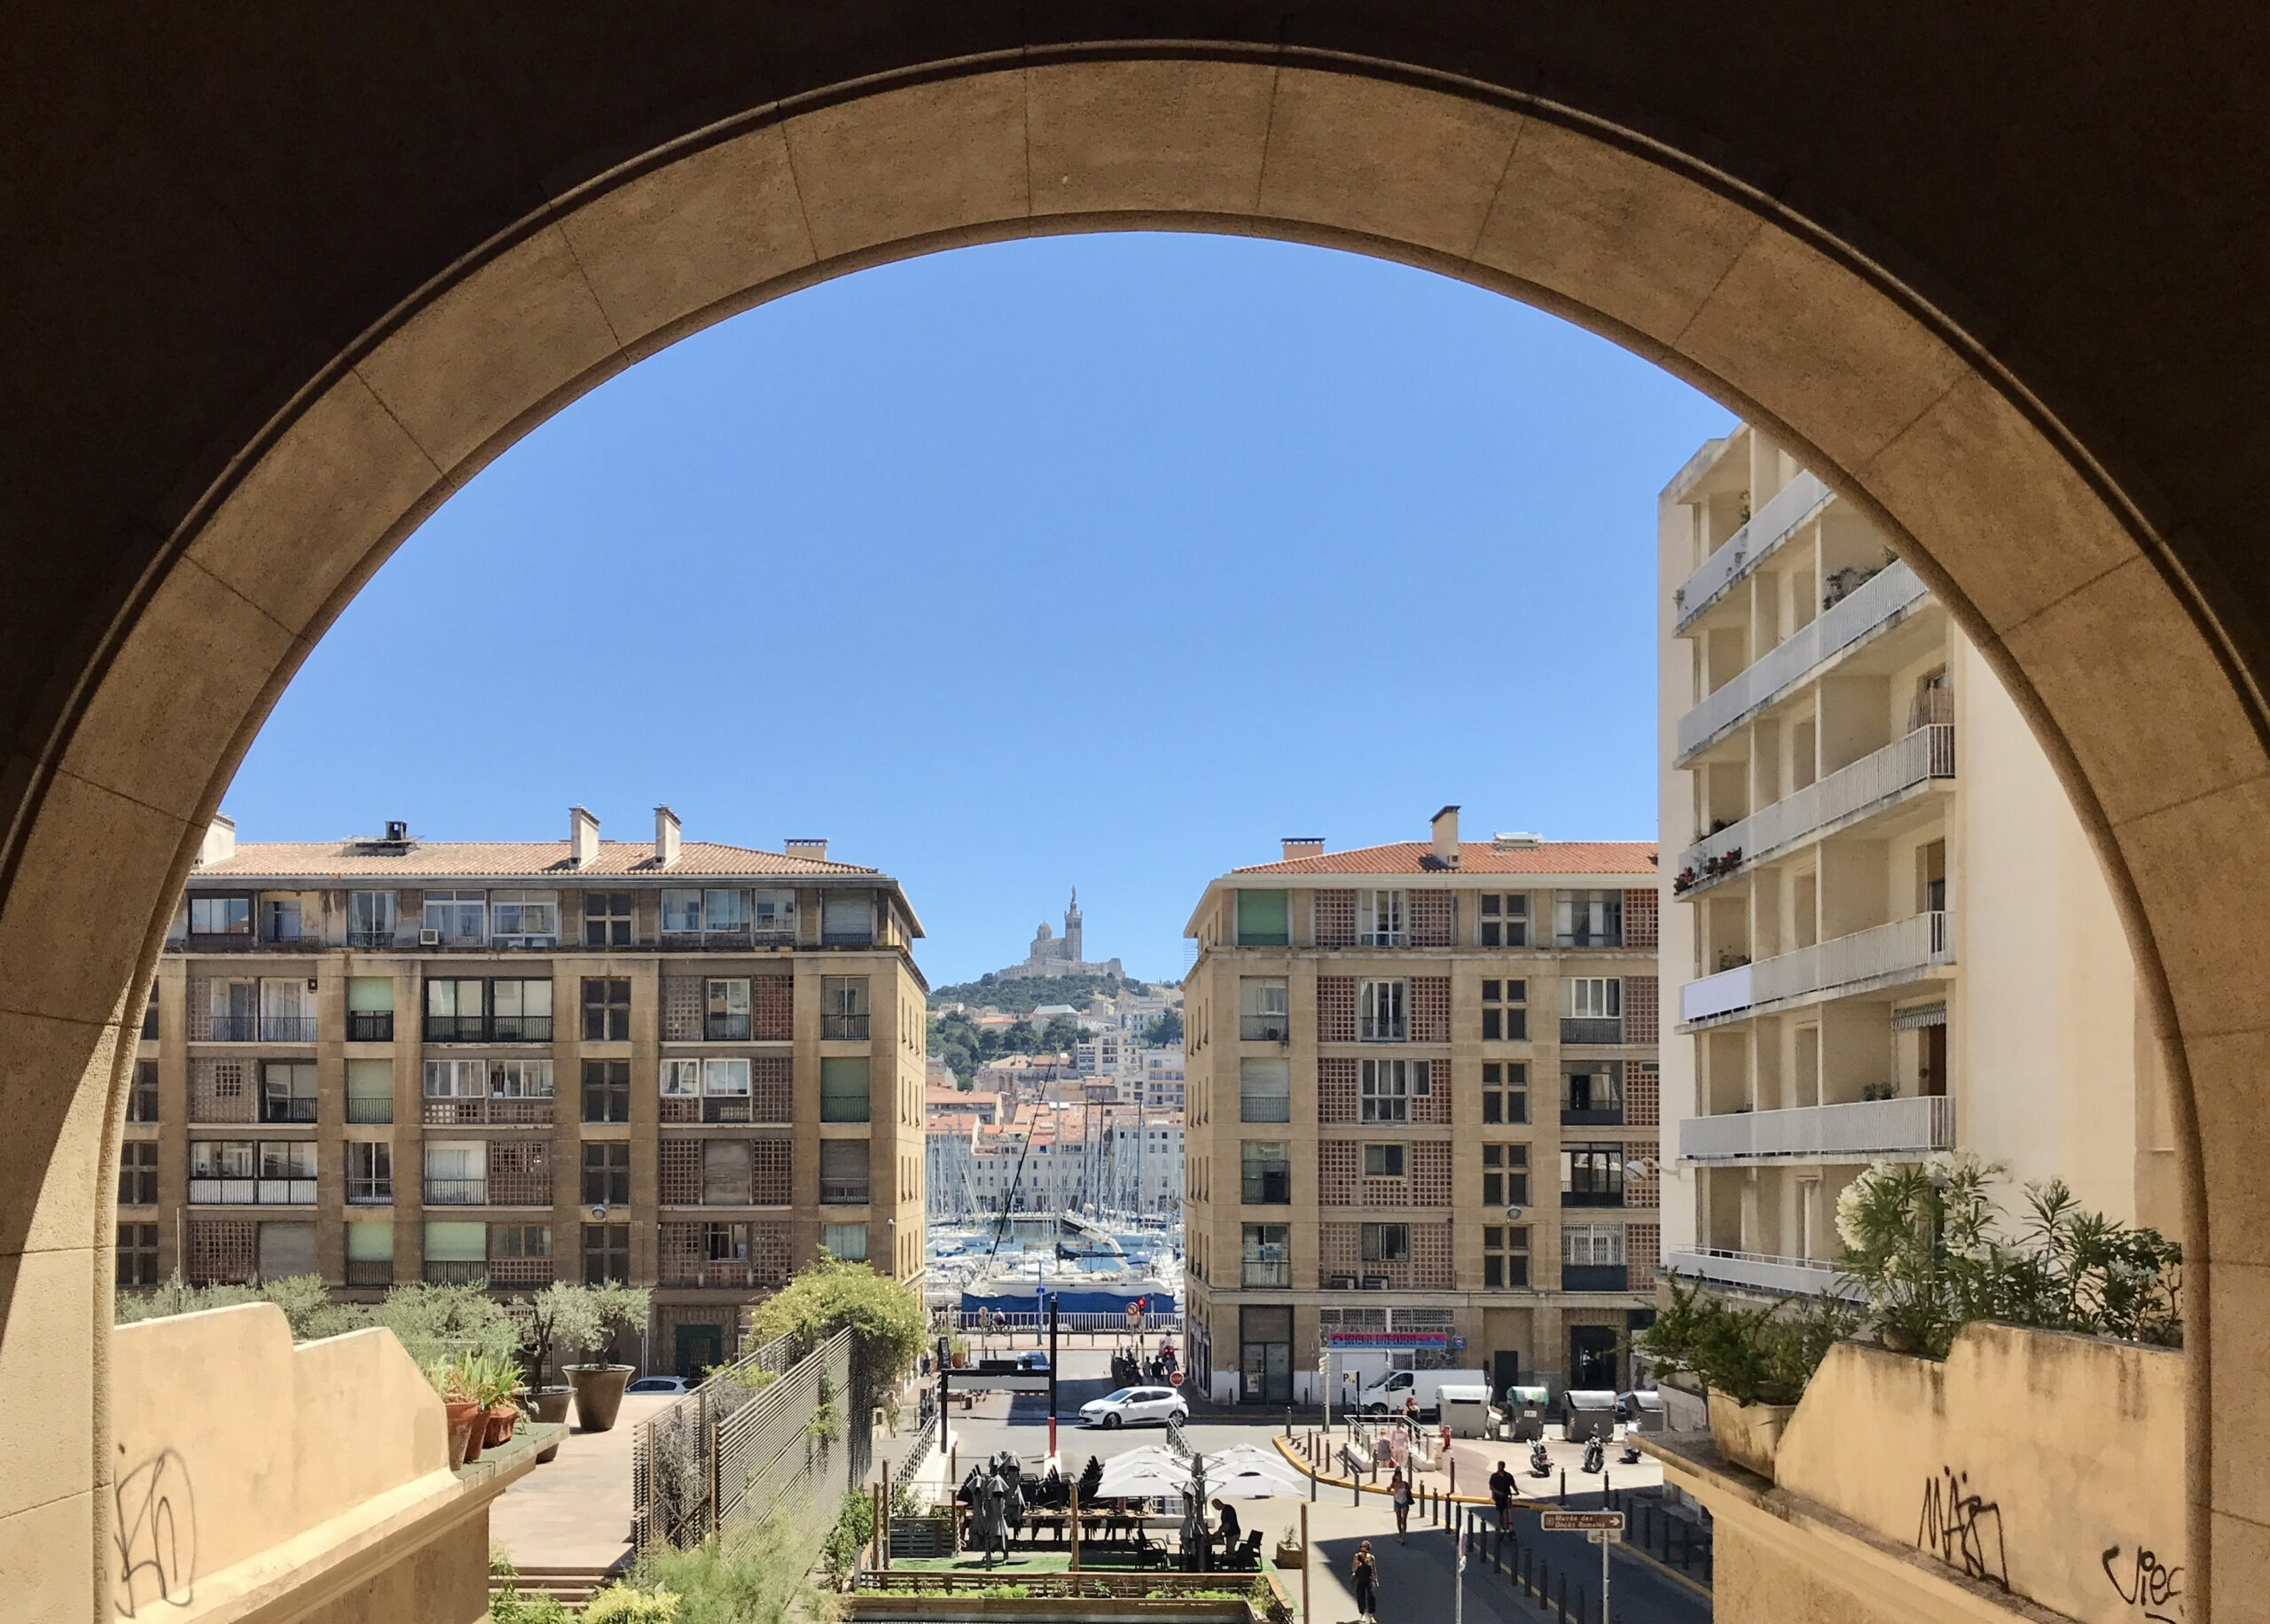 A photo through a passage way of the Vieux-Port in Marseille, peering onto apartment buildings overlooking the sea with a hilltop church in the distance.